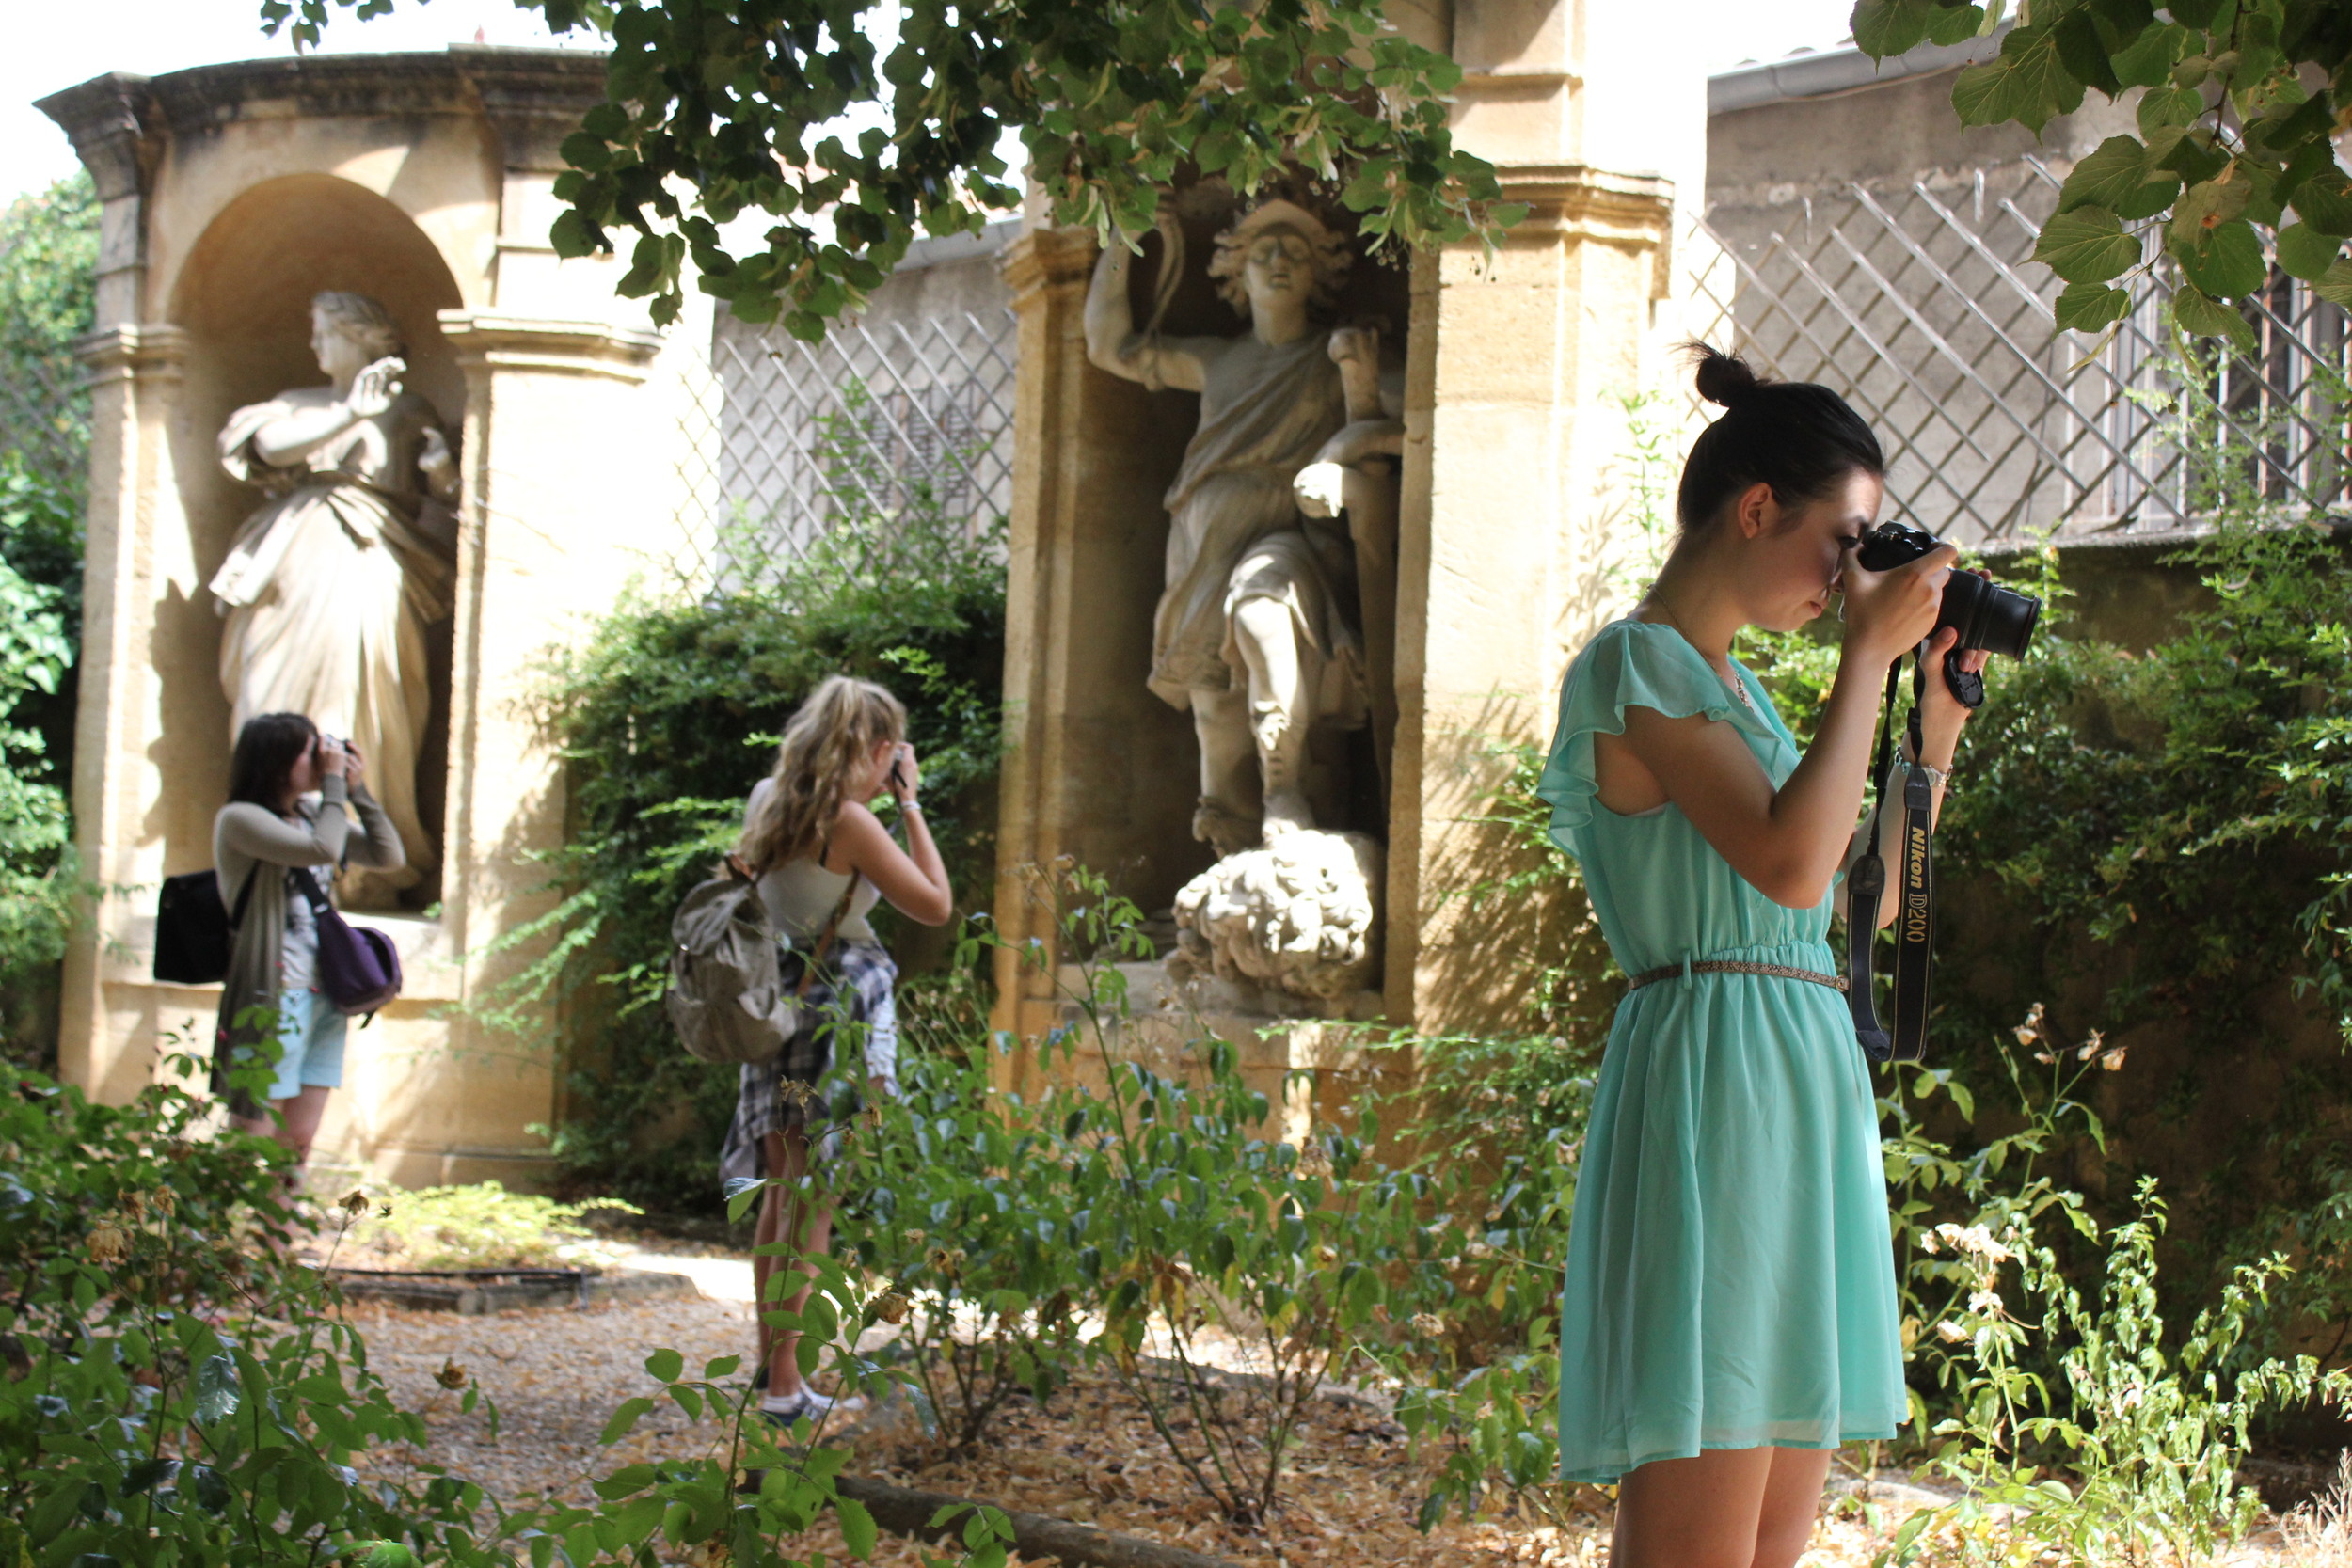 Photography students on an excursion to Aix en Provence